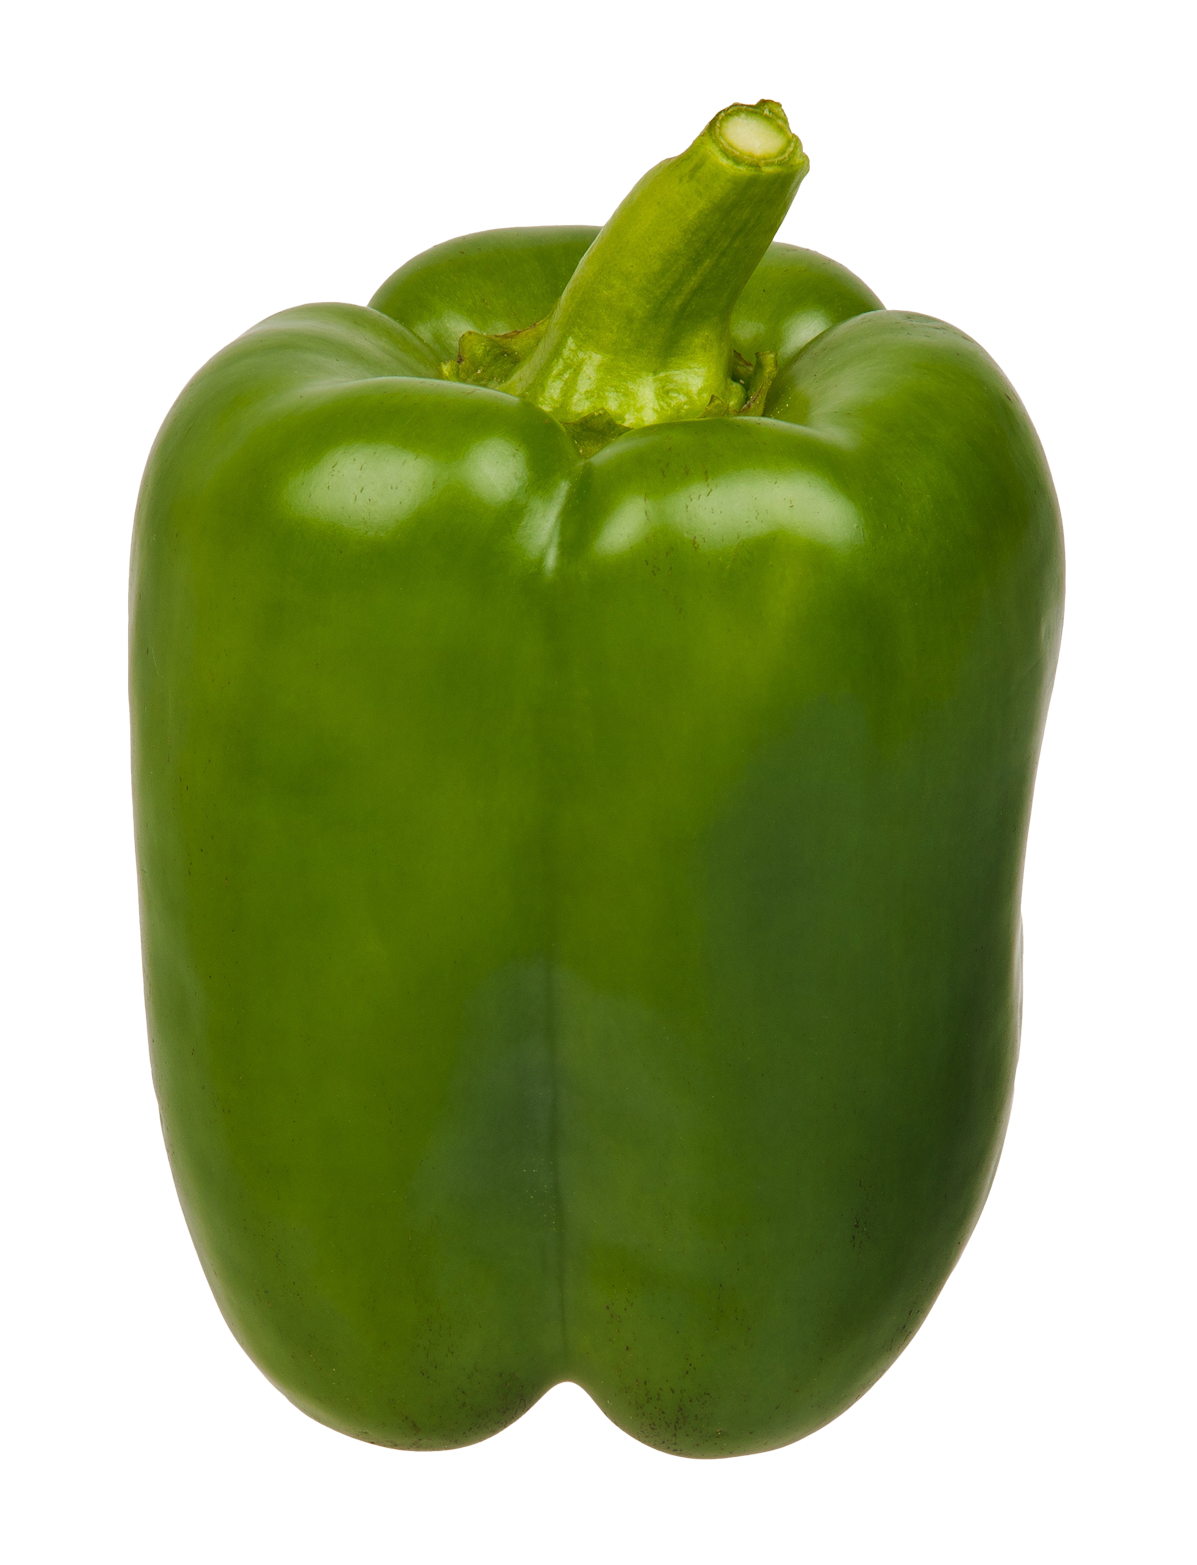 Green Bell Pepper PNG Image.